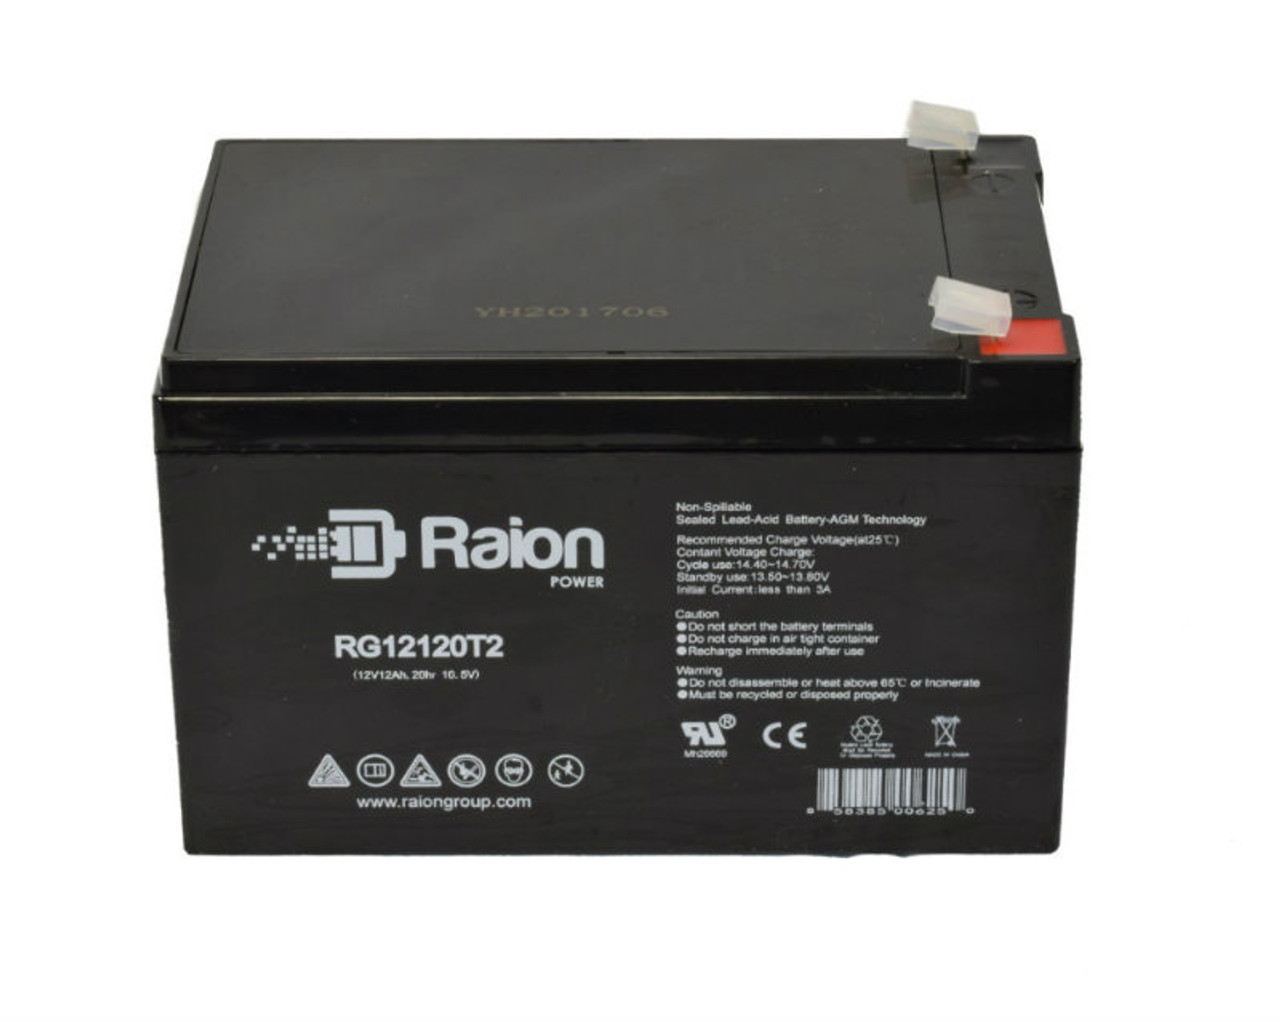 Raion Power RG12120T2 SLA Battery for Ademco PWPS12120 Fire Alarm Control Panel